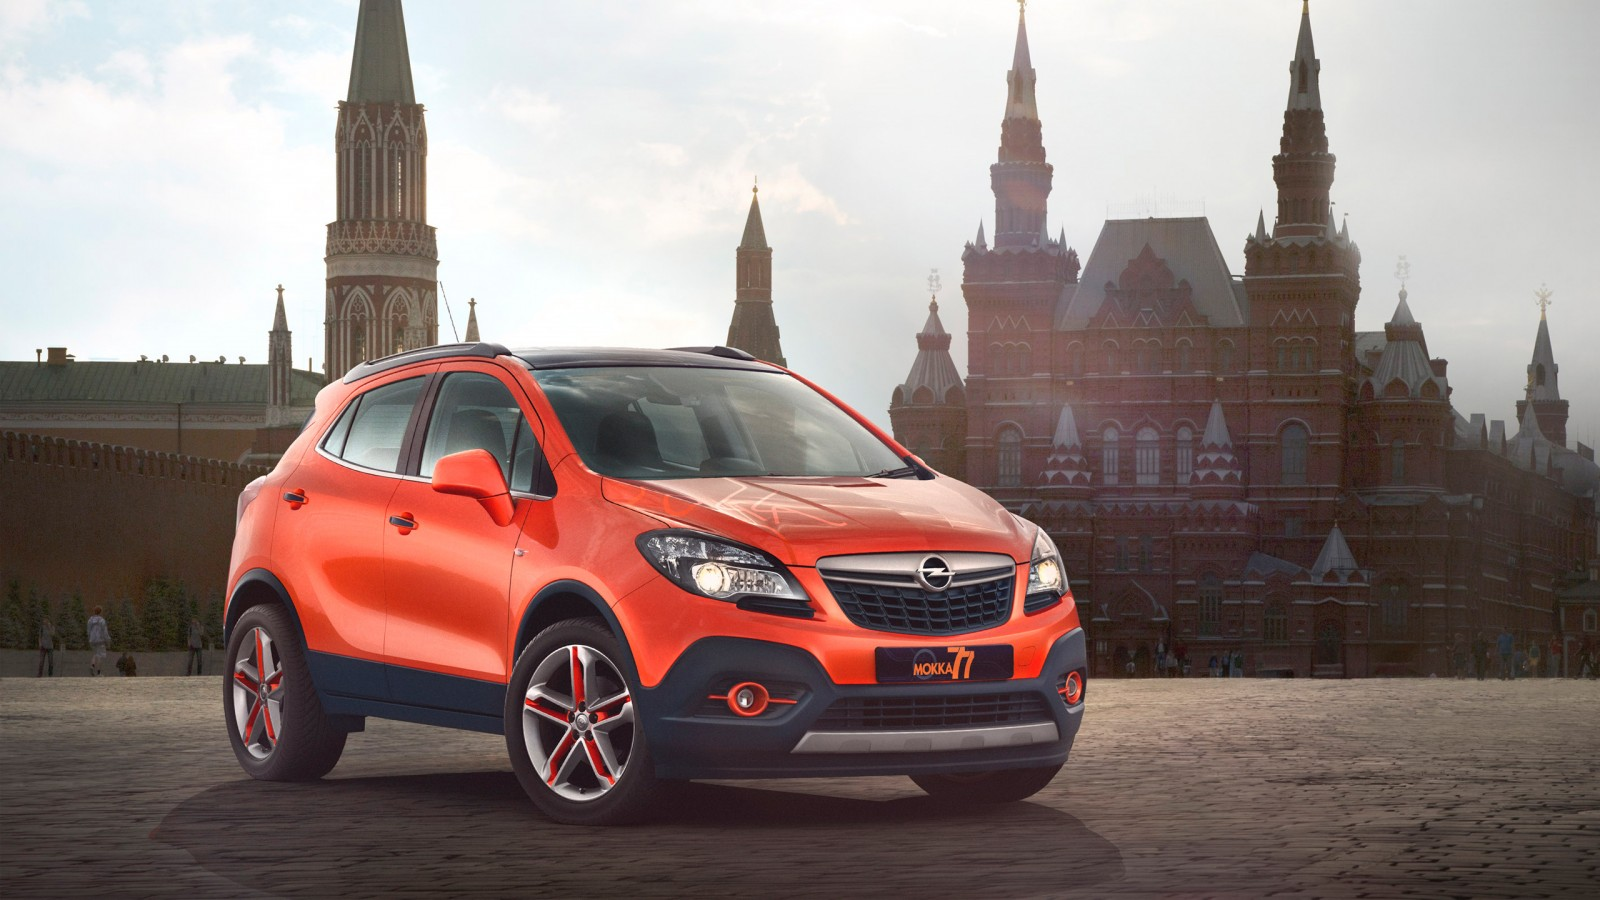 2015 opel mokka moscow edition wallpaper hd car wallpapers id 4757. Black Bedroom Furniture Sets. Home Design Ideas